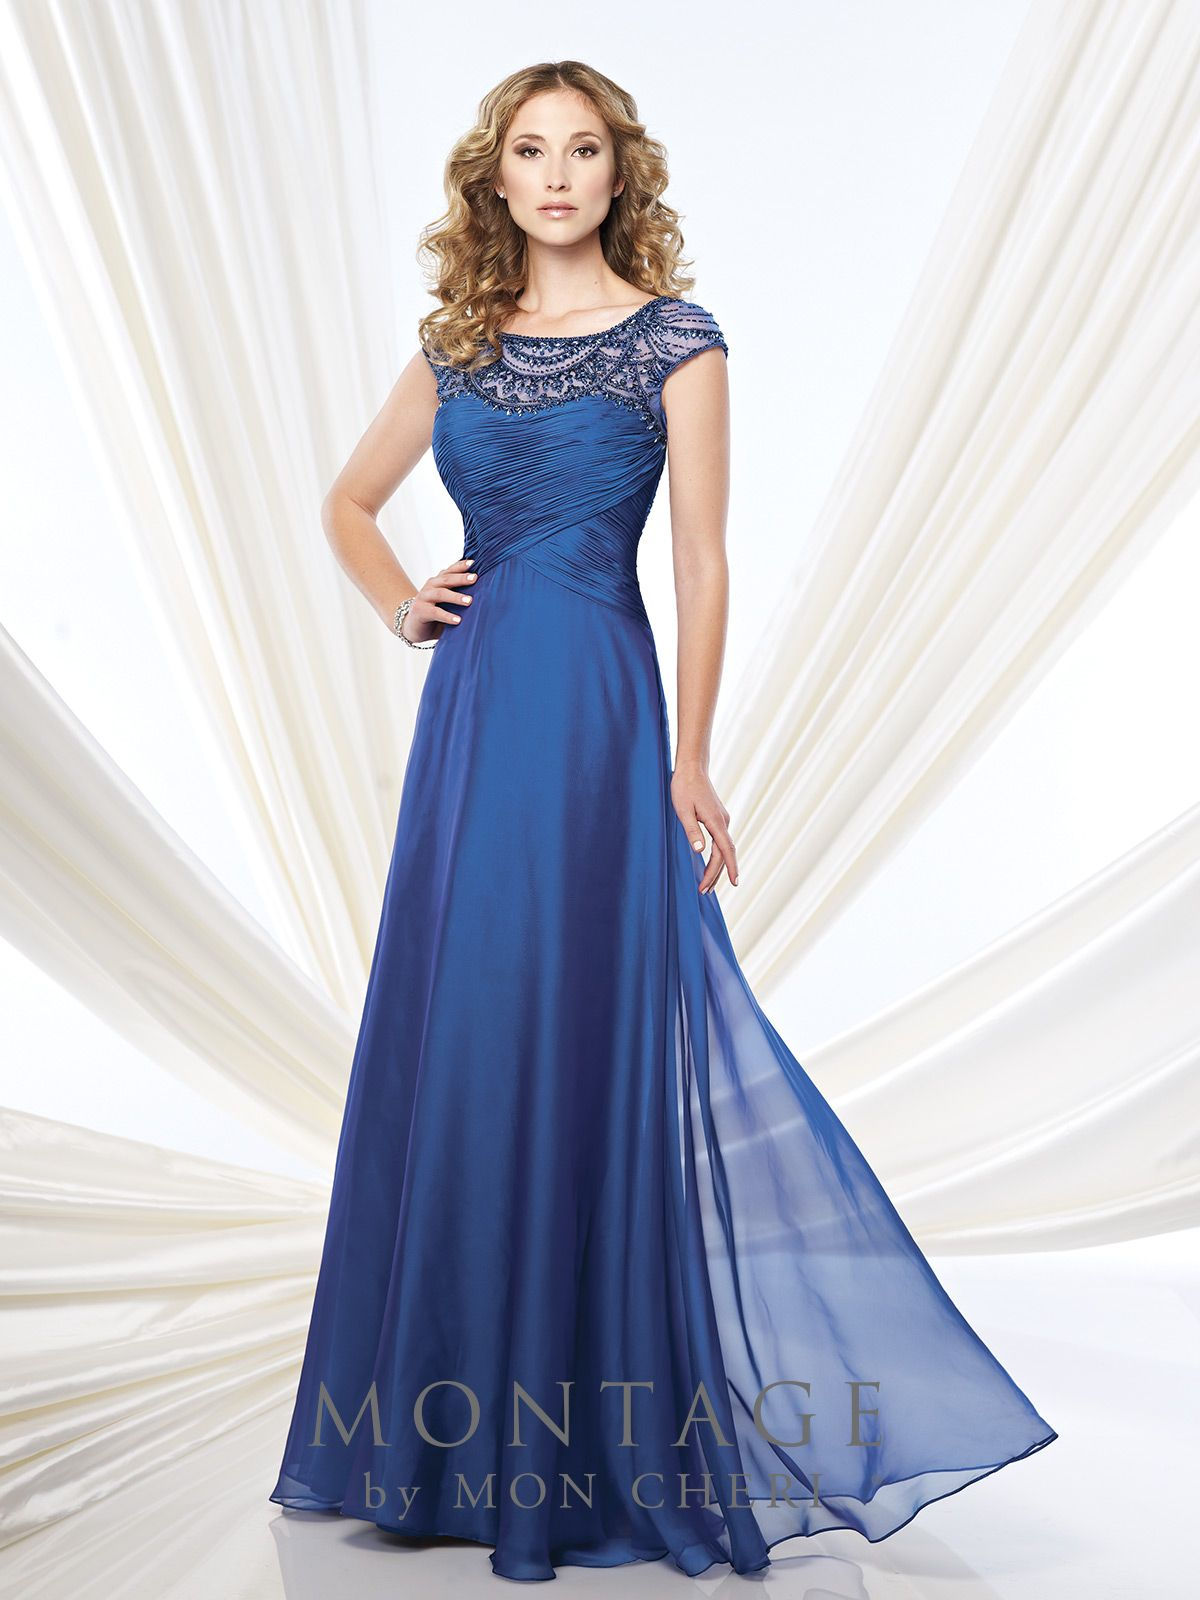 Two-tone chiffon A-line gown with hand-beaded illusion cap sleeves and bateau neckline, crisscross ruched semi-sweetheart bodice, beaded illusion keyhole back, sweep train. Matching shawl included. Sizes: 4 – 20, 16W – 26W